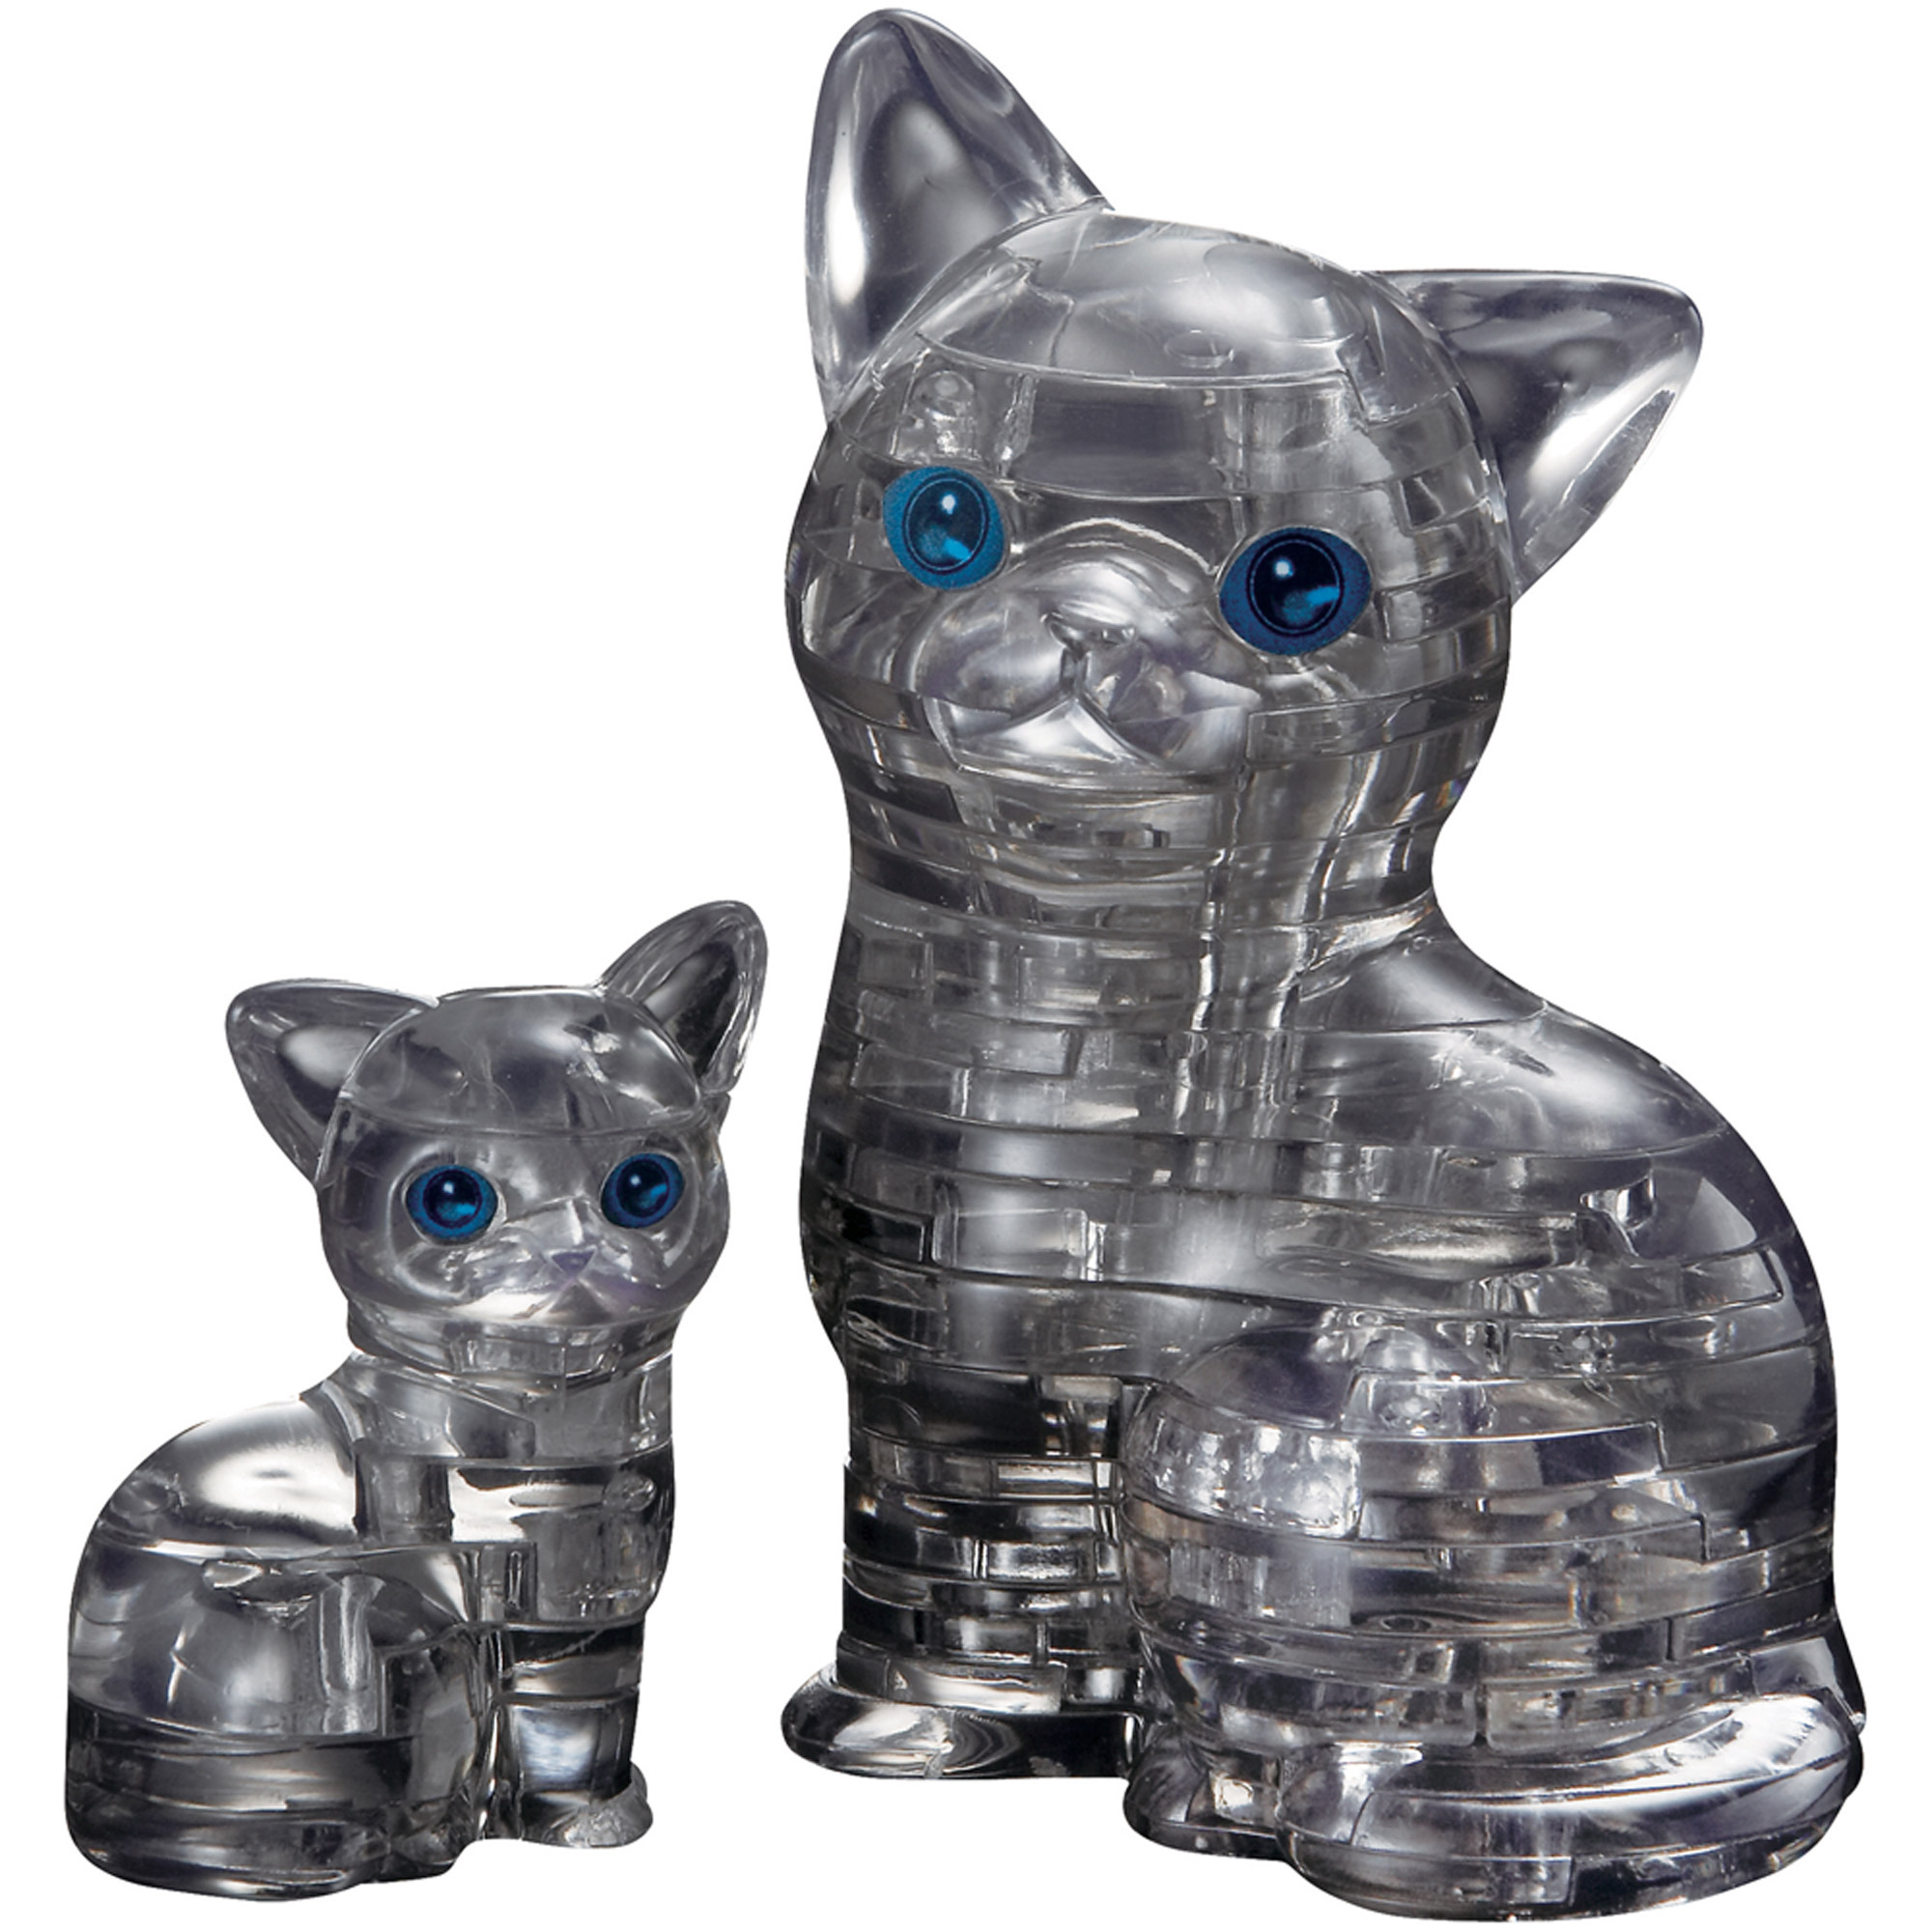 3D Crystal Puzzle Black Cat and Kitten Puzzle, 49 Pieces